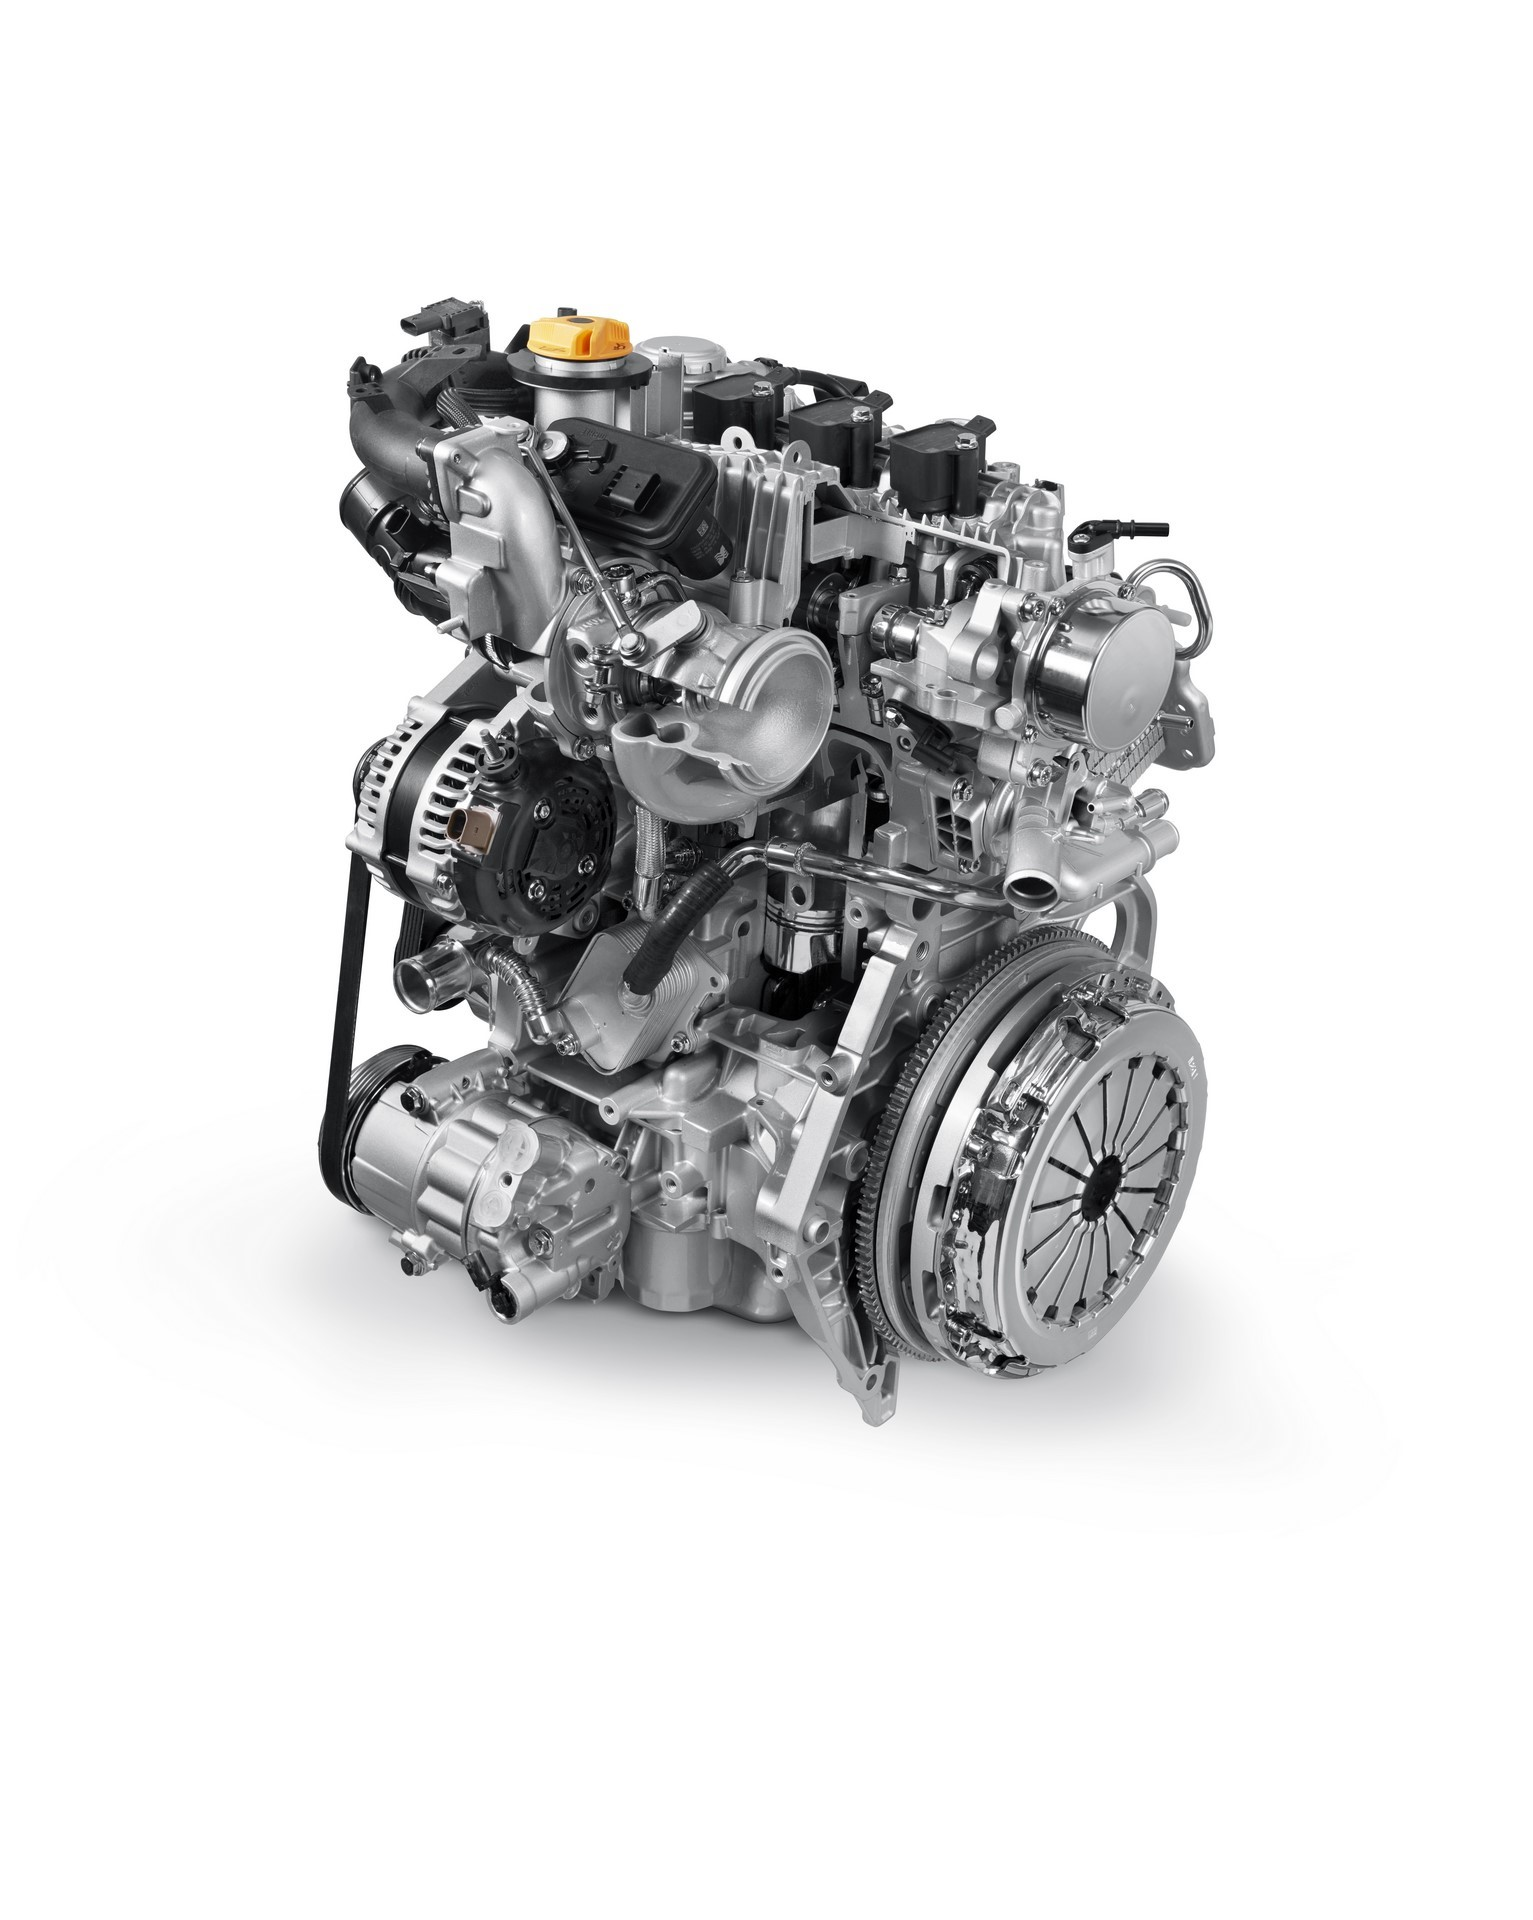 180828_Fiat_New-10L-Turbo-3-cylinder-120HP_13